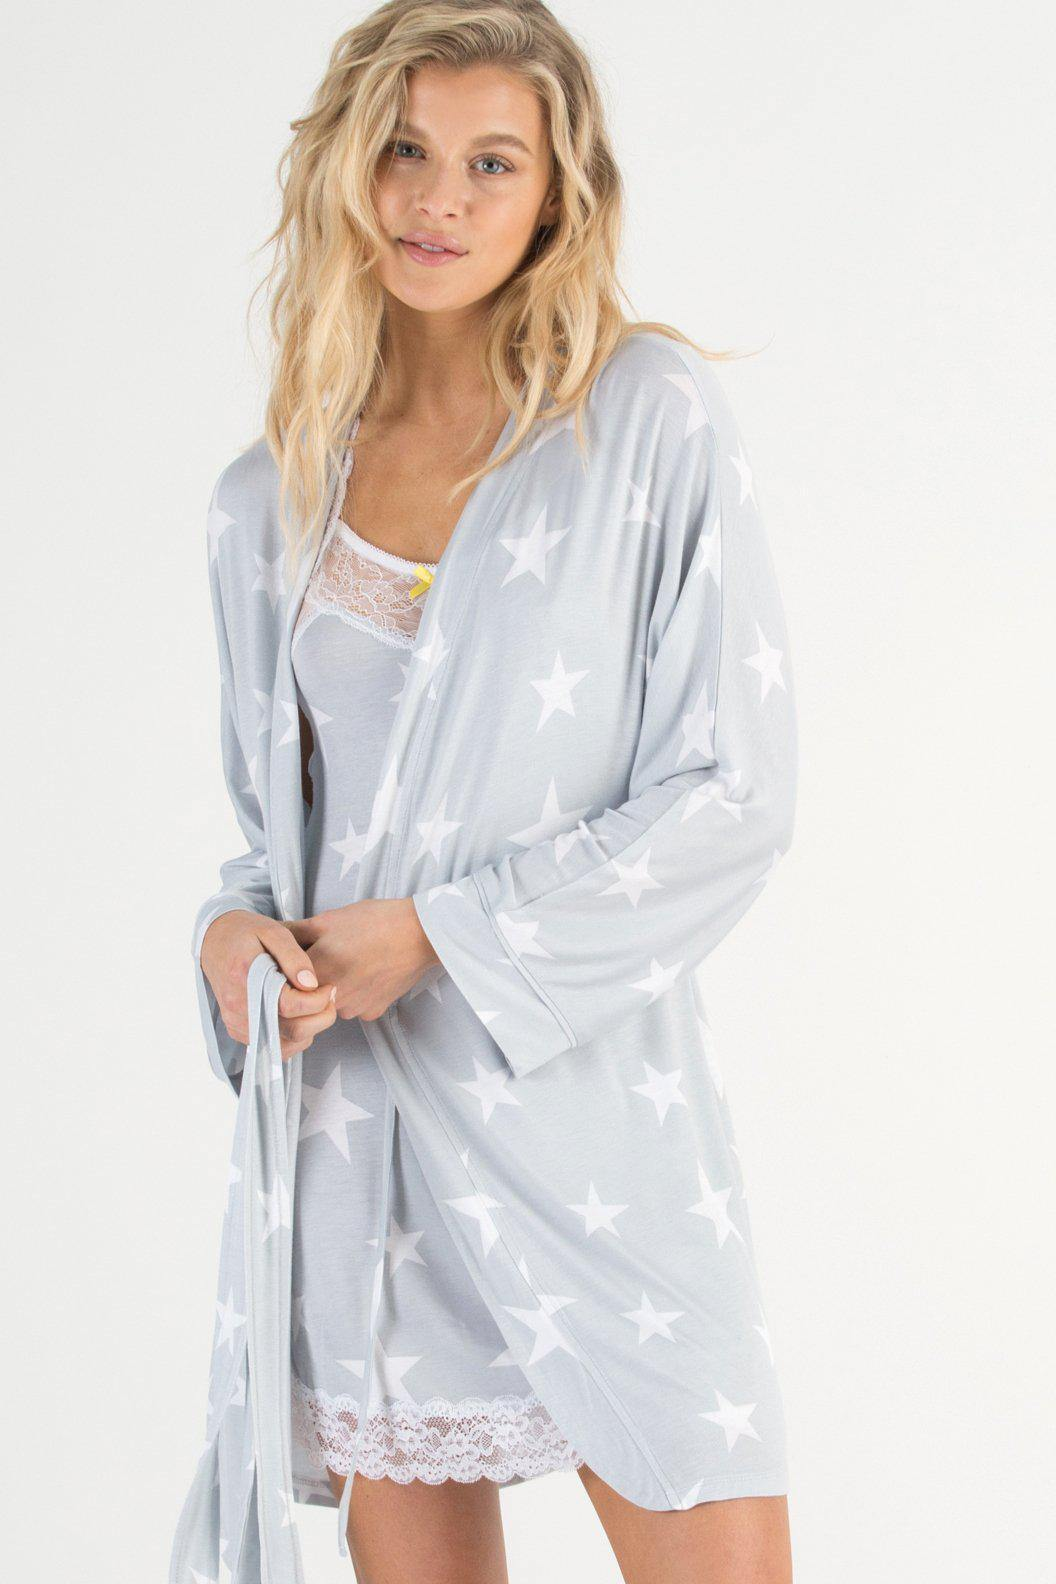 All American Rayon Robe-Sleepwear-Honeydew Intimates-Flint Stars-Small-Honeydew Intimates